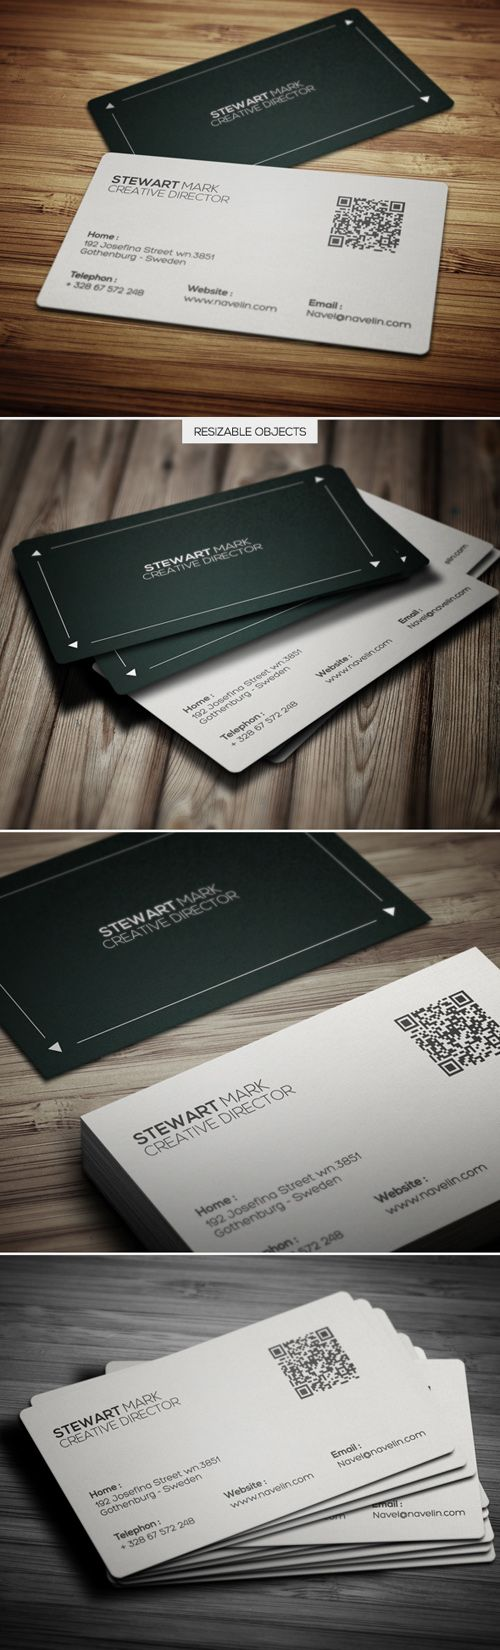 Creative Business Cards Design-2 #businesscards #modernbusinesscards #creativebusinesscards #businesscardsdesign